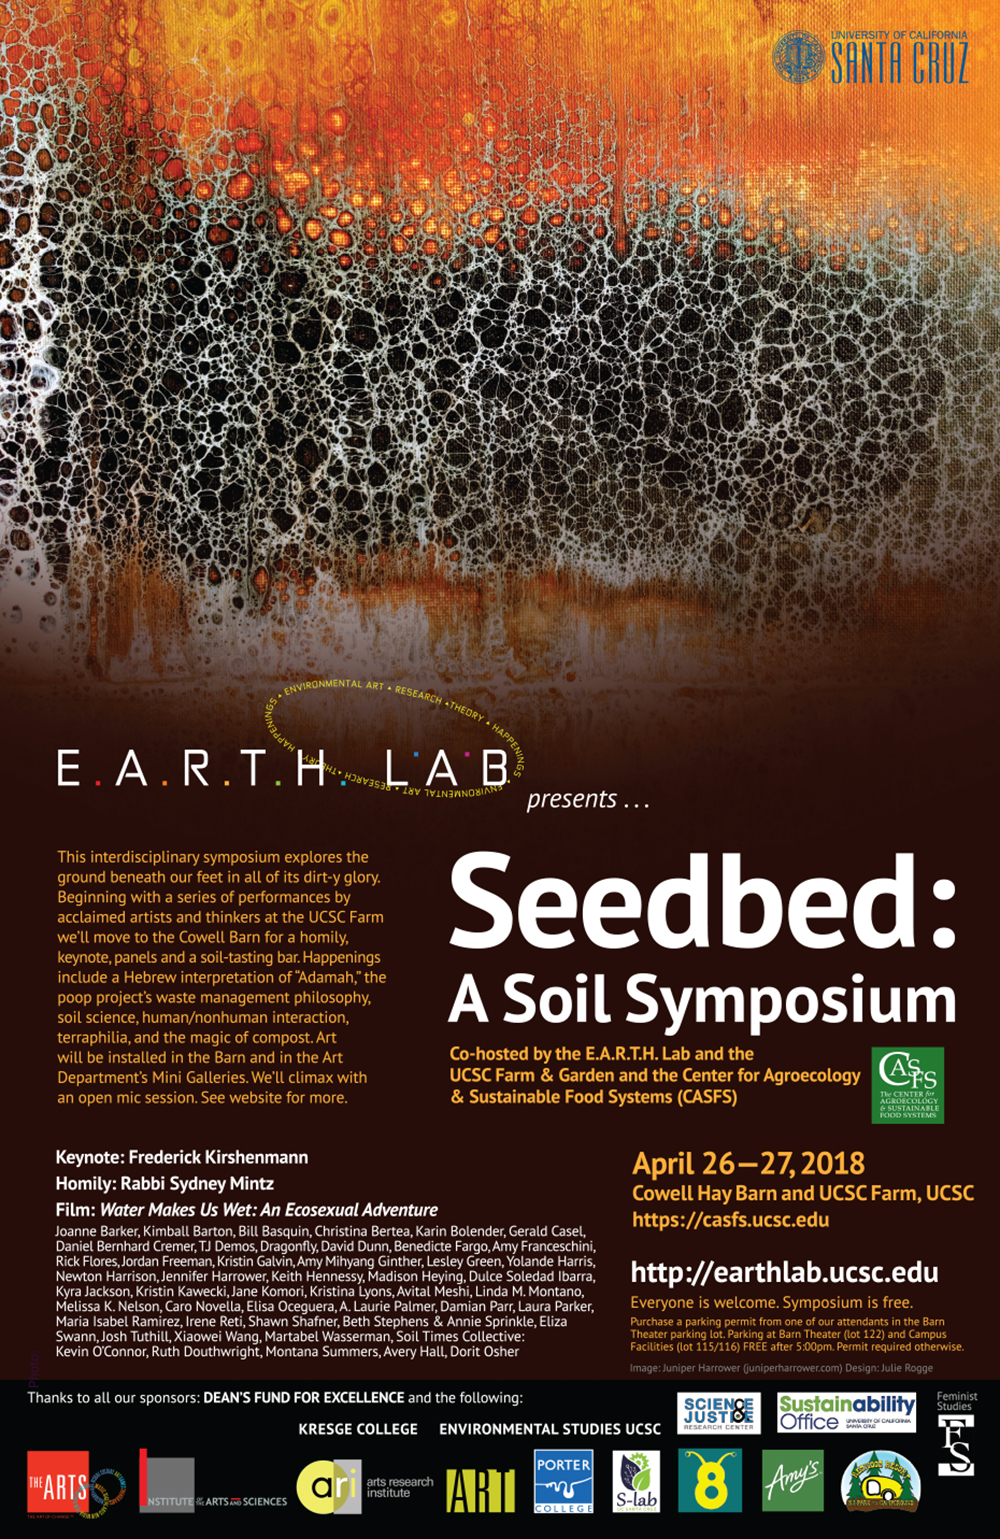 Seedbed: A Soil Symposium poster